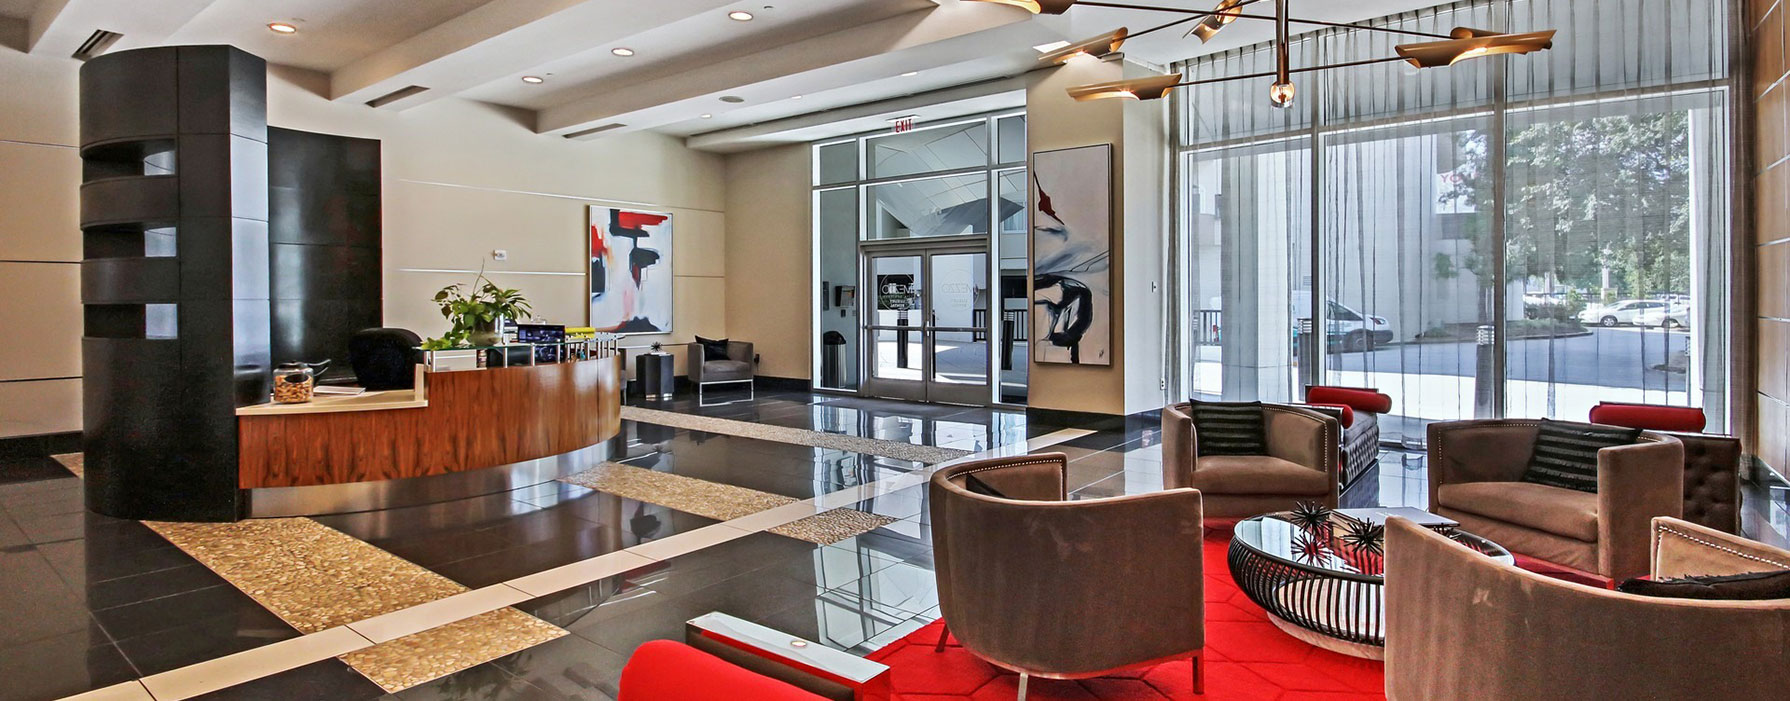 Mezzo Apartments - Atlanta, GA - Office